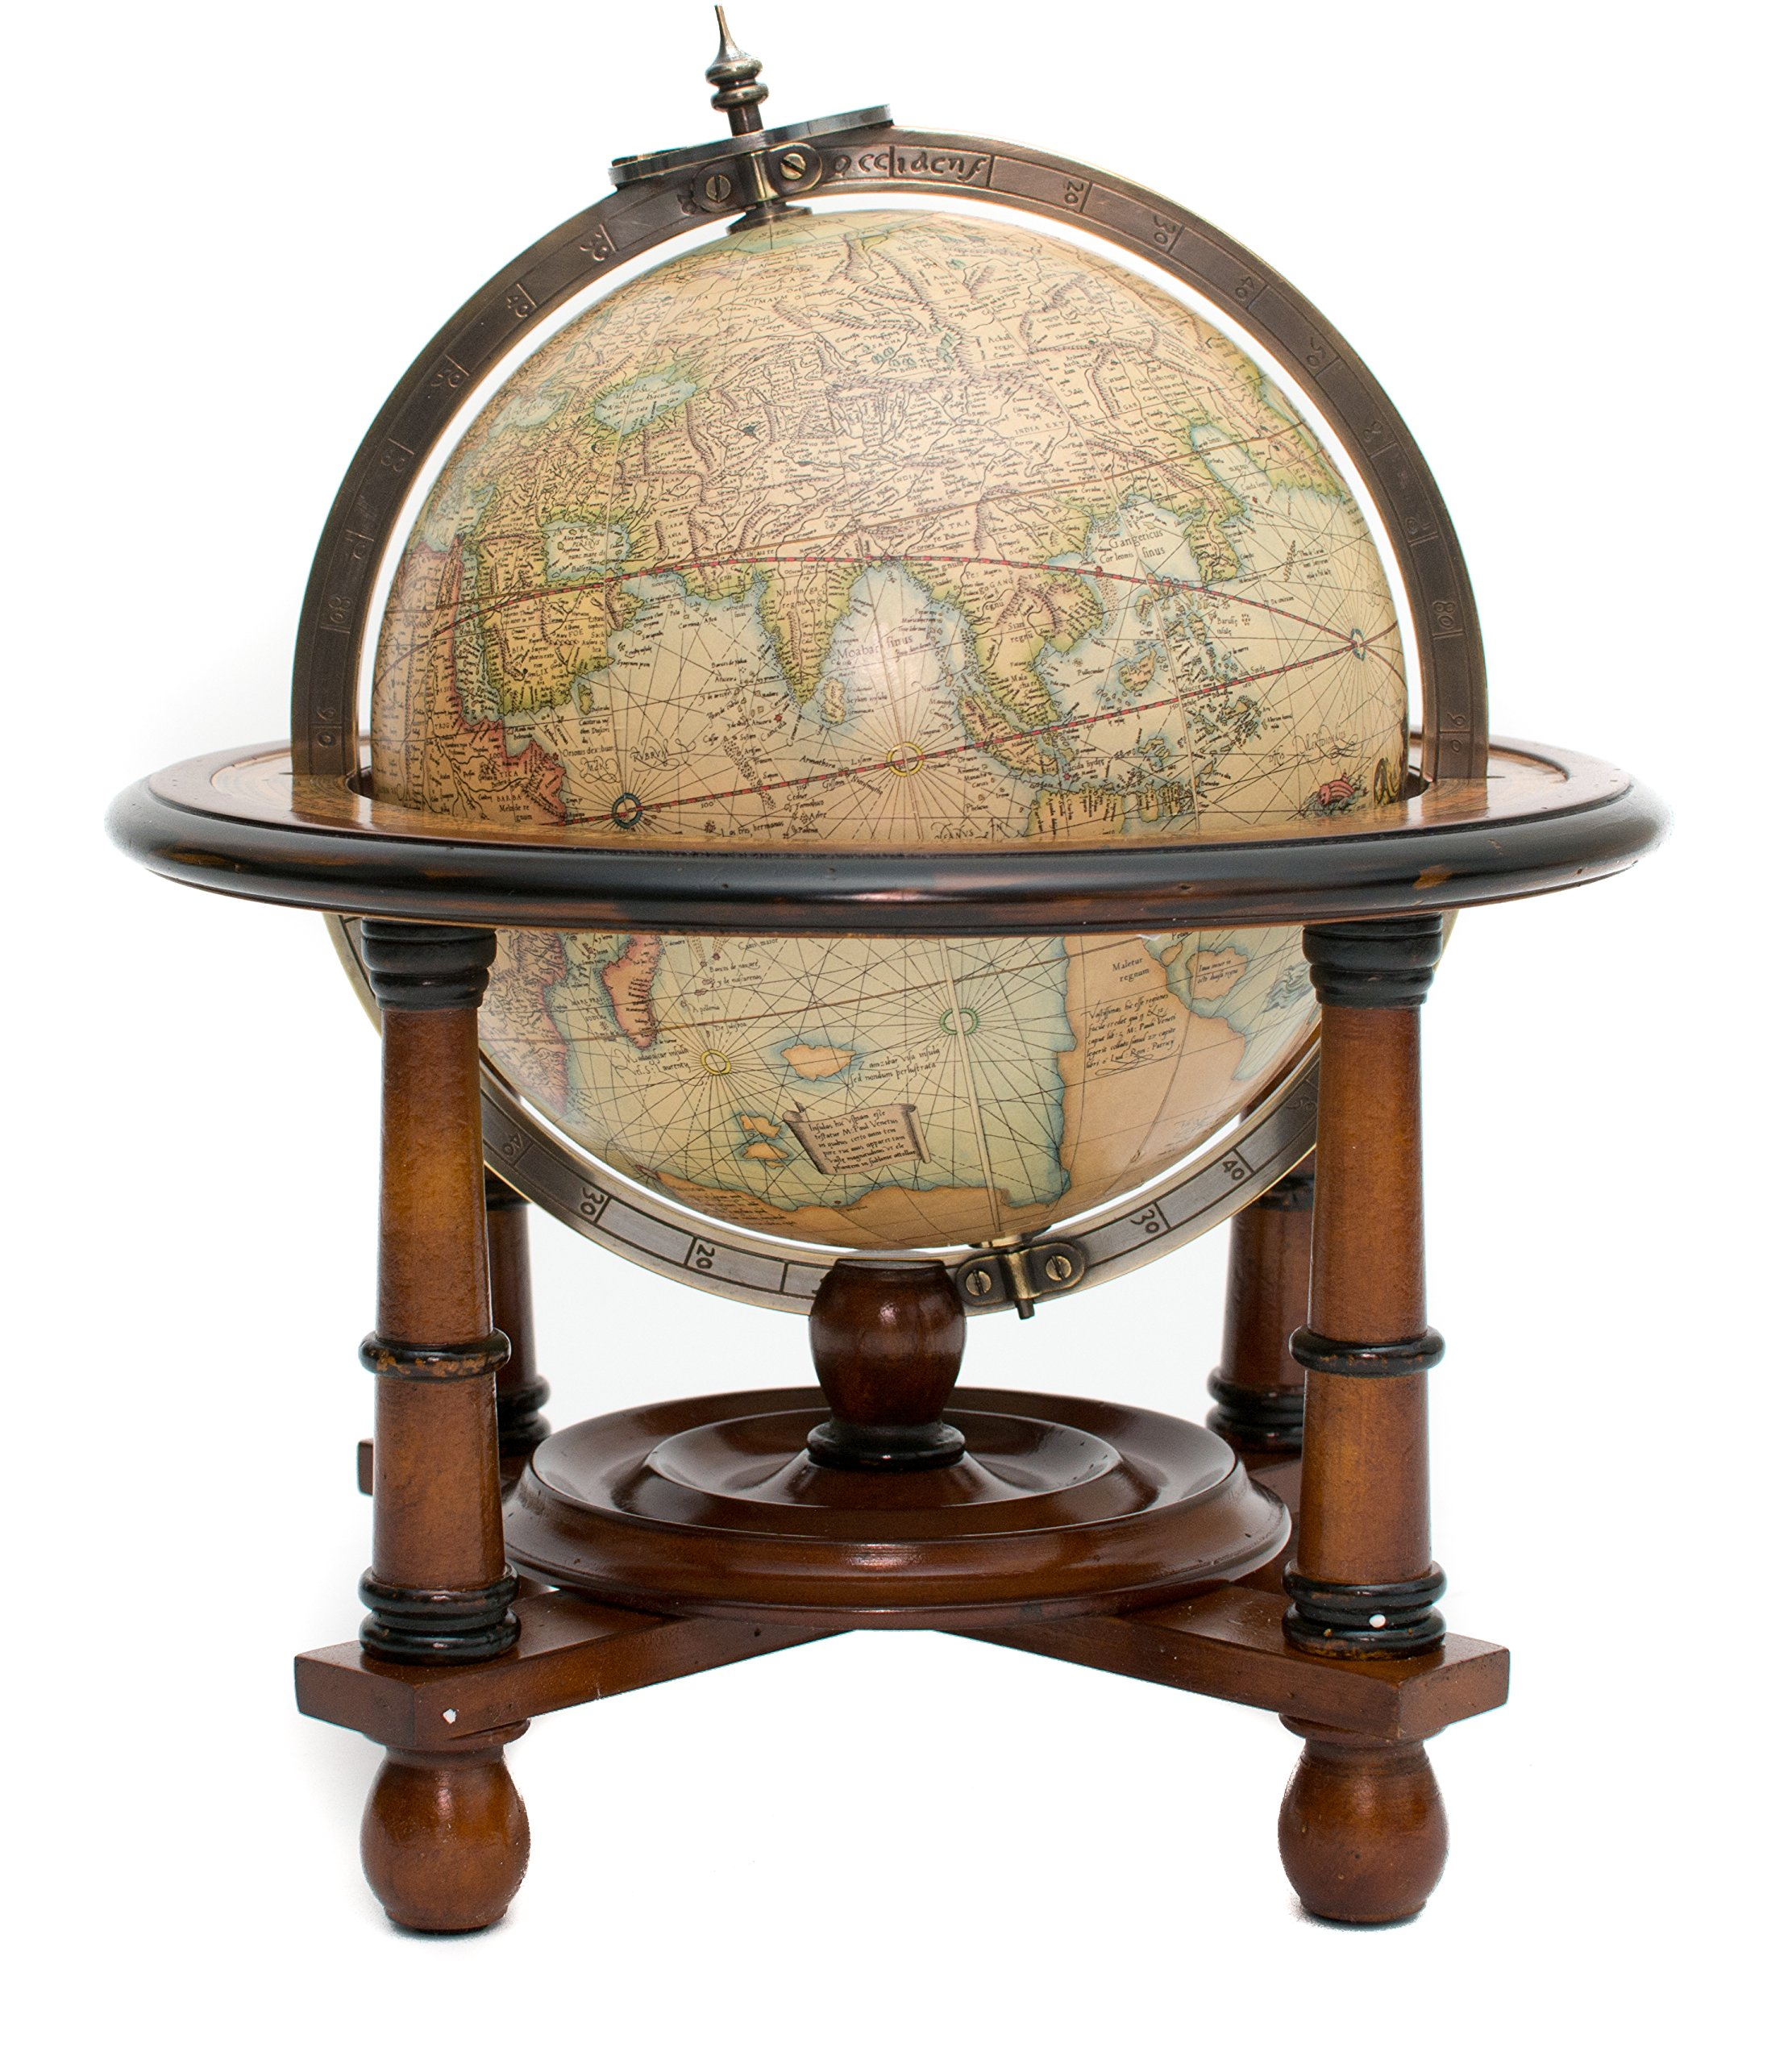 Navigation Globe of the World up to 1541